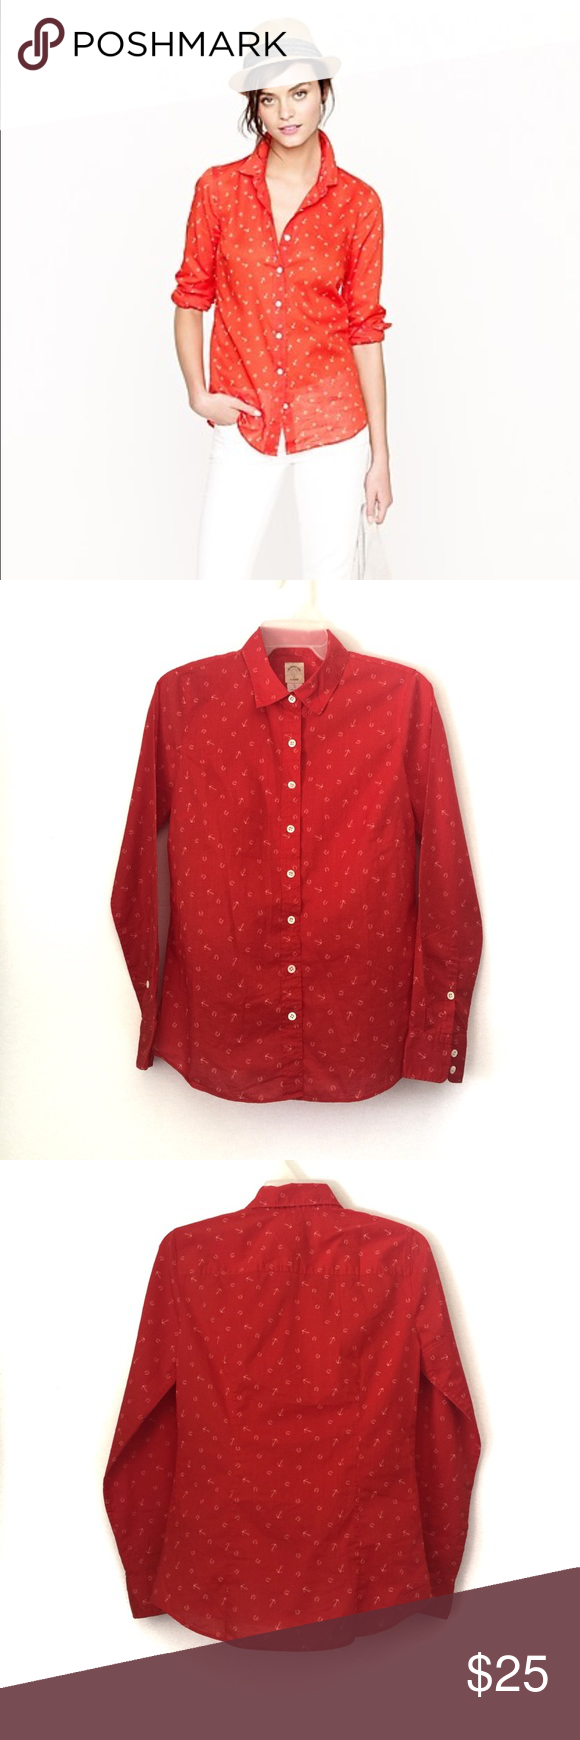 e007c36f Button Downs · J.CREW PERFECT SHIRT IN ANCHORS AND HORSESHOES With  precisely placed bust darts and back